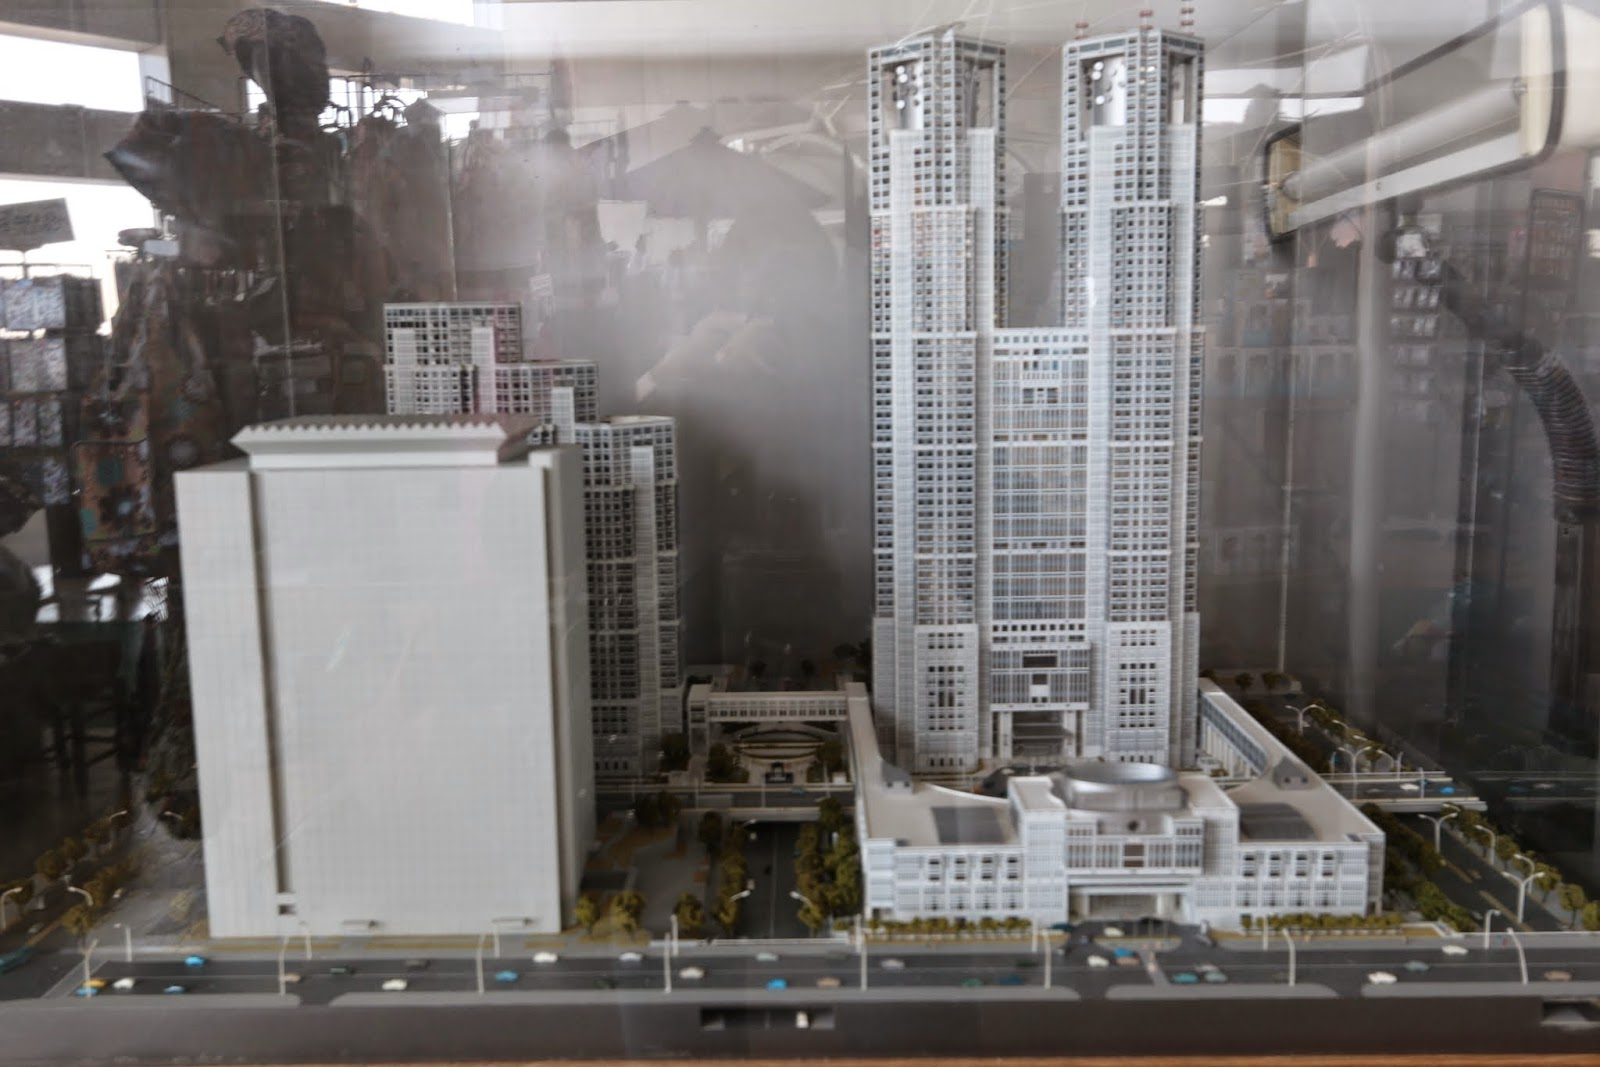 The model of Tokyo Metropolitan Government Building can be seen at its observation deck in Shinjuku Business District of Tokyo, Japan